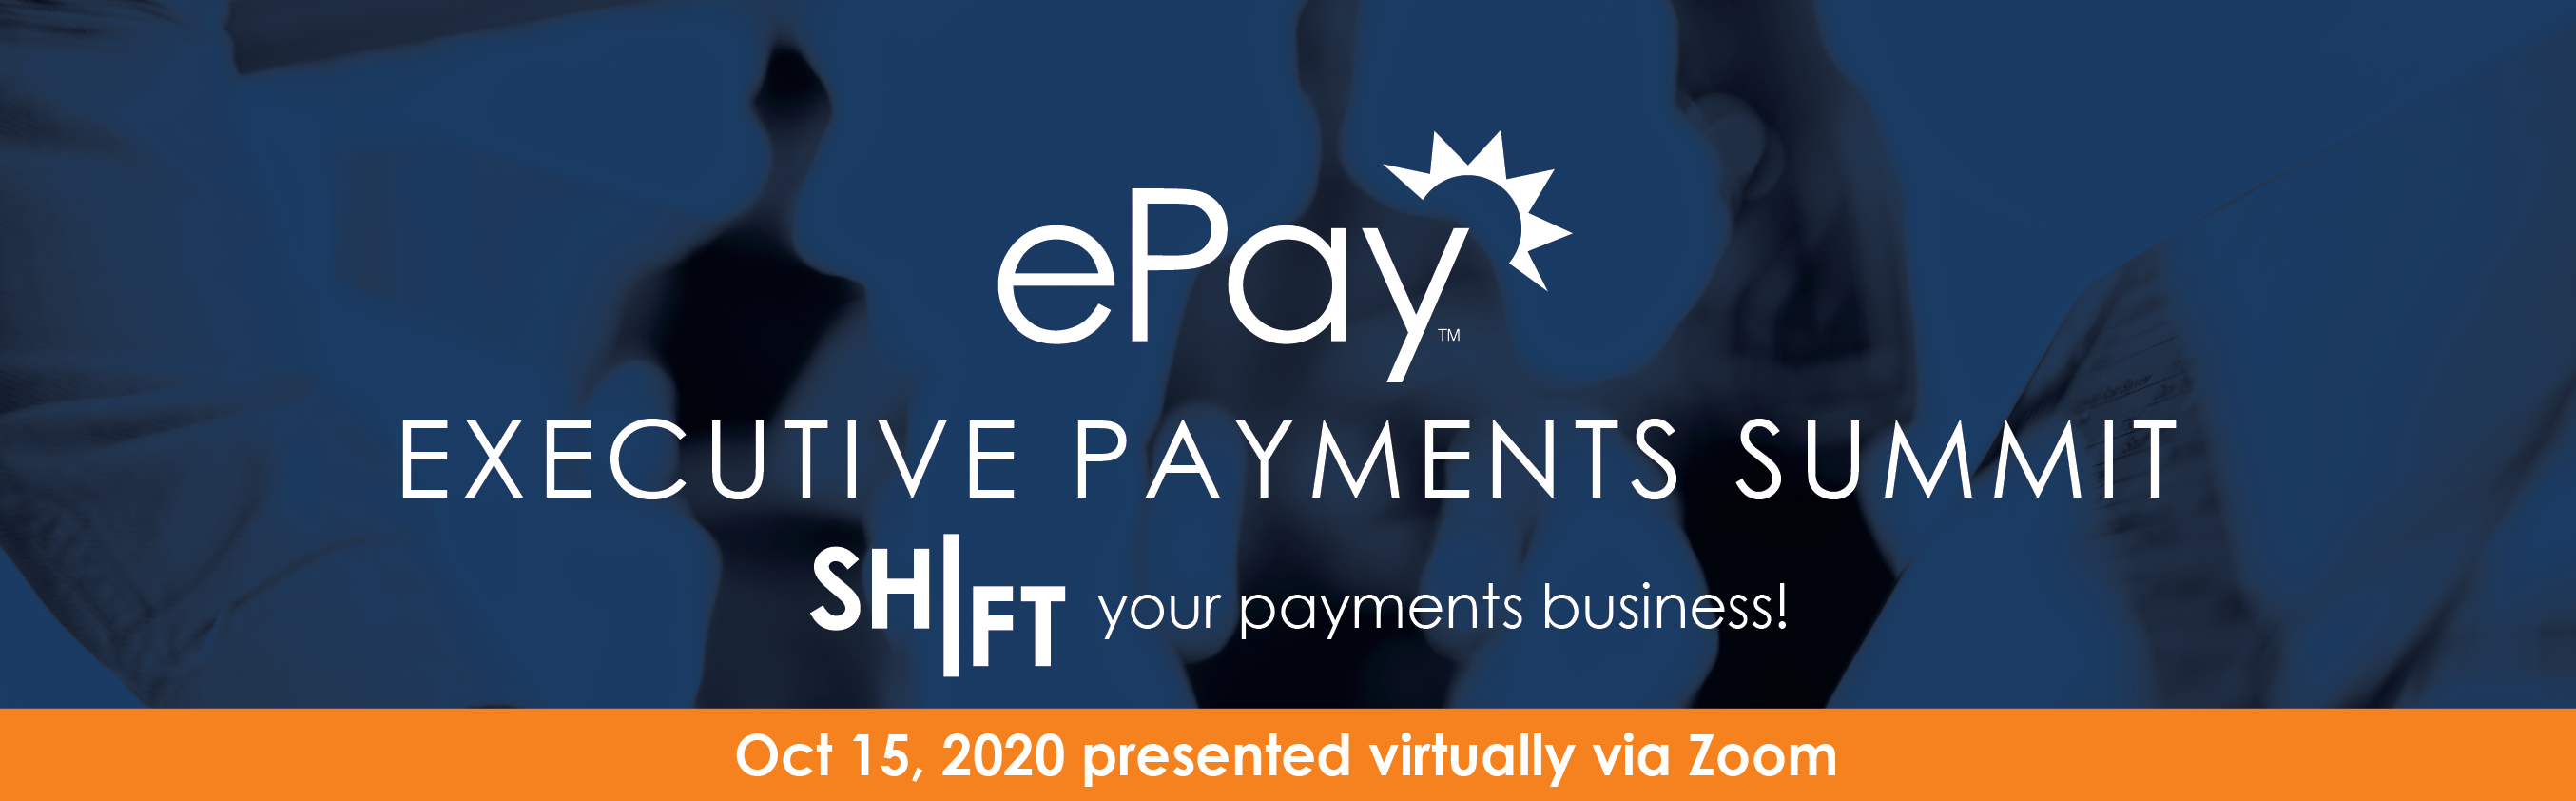 EXECUTIVE PAYMENTS SUMMIT 2020 AGENDASHIFT Your Payments Business! Virtual Via Zoom – October 15